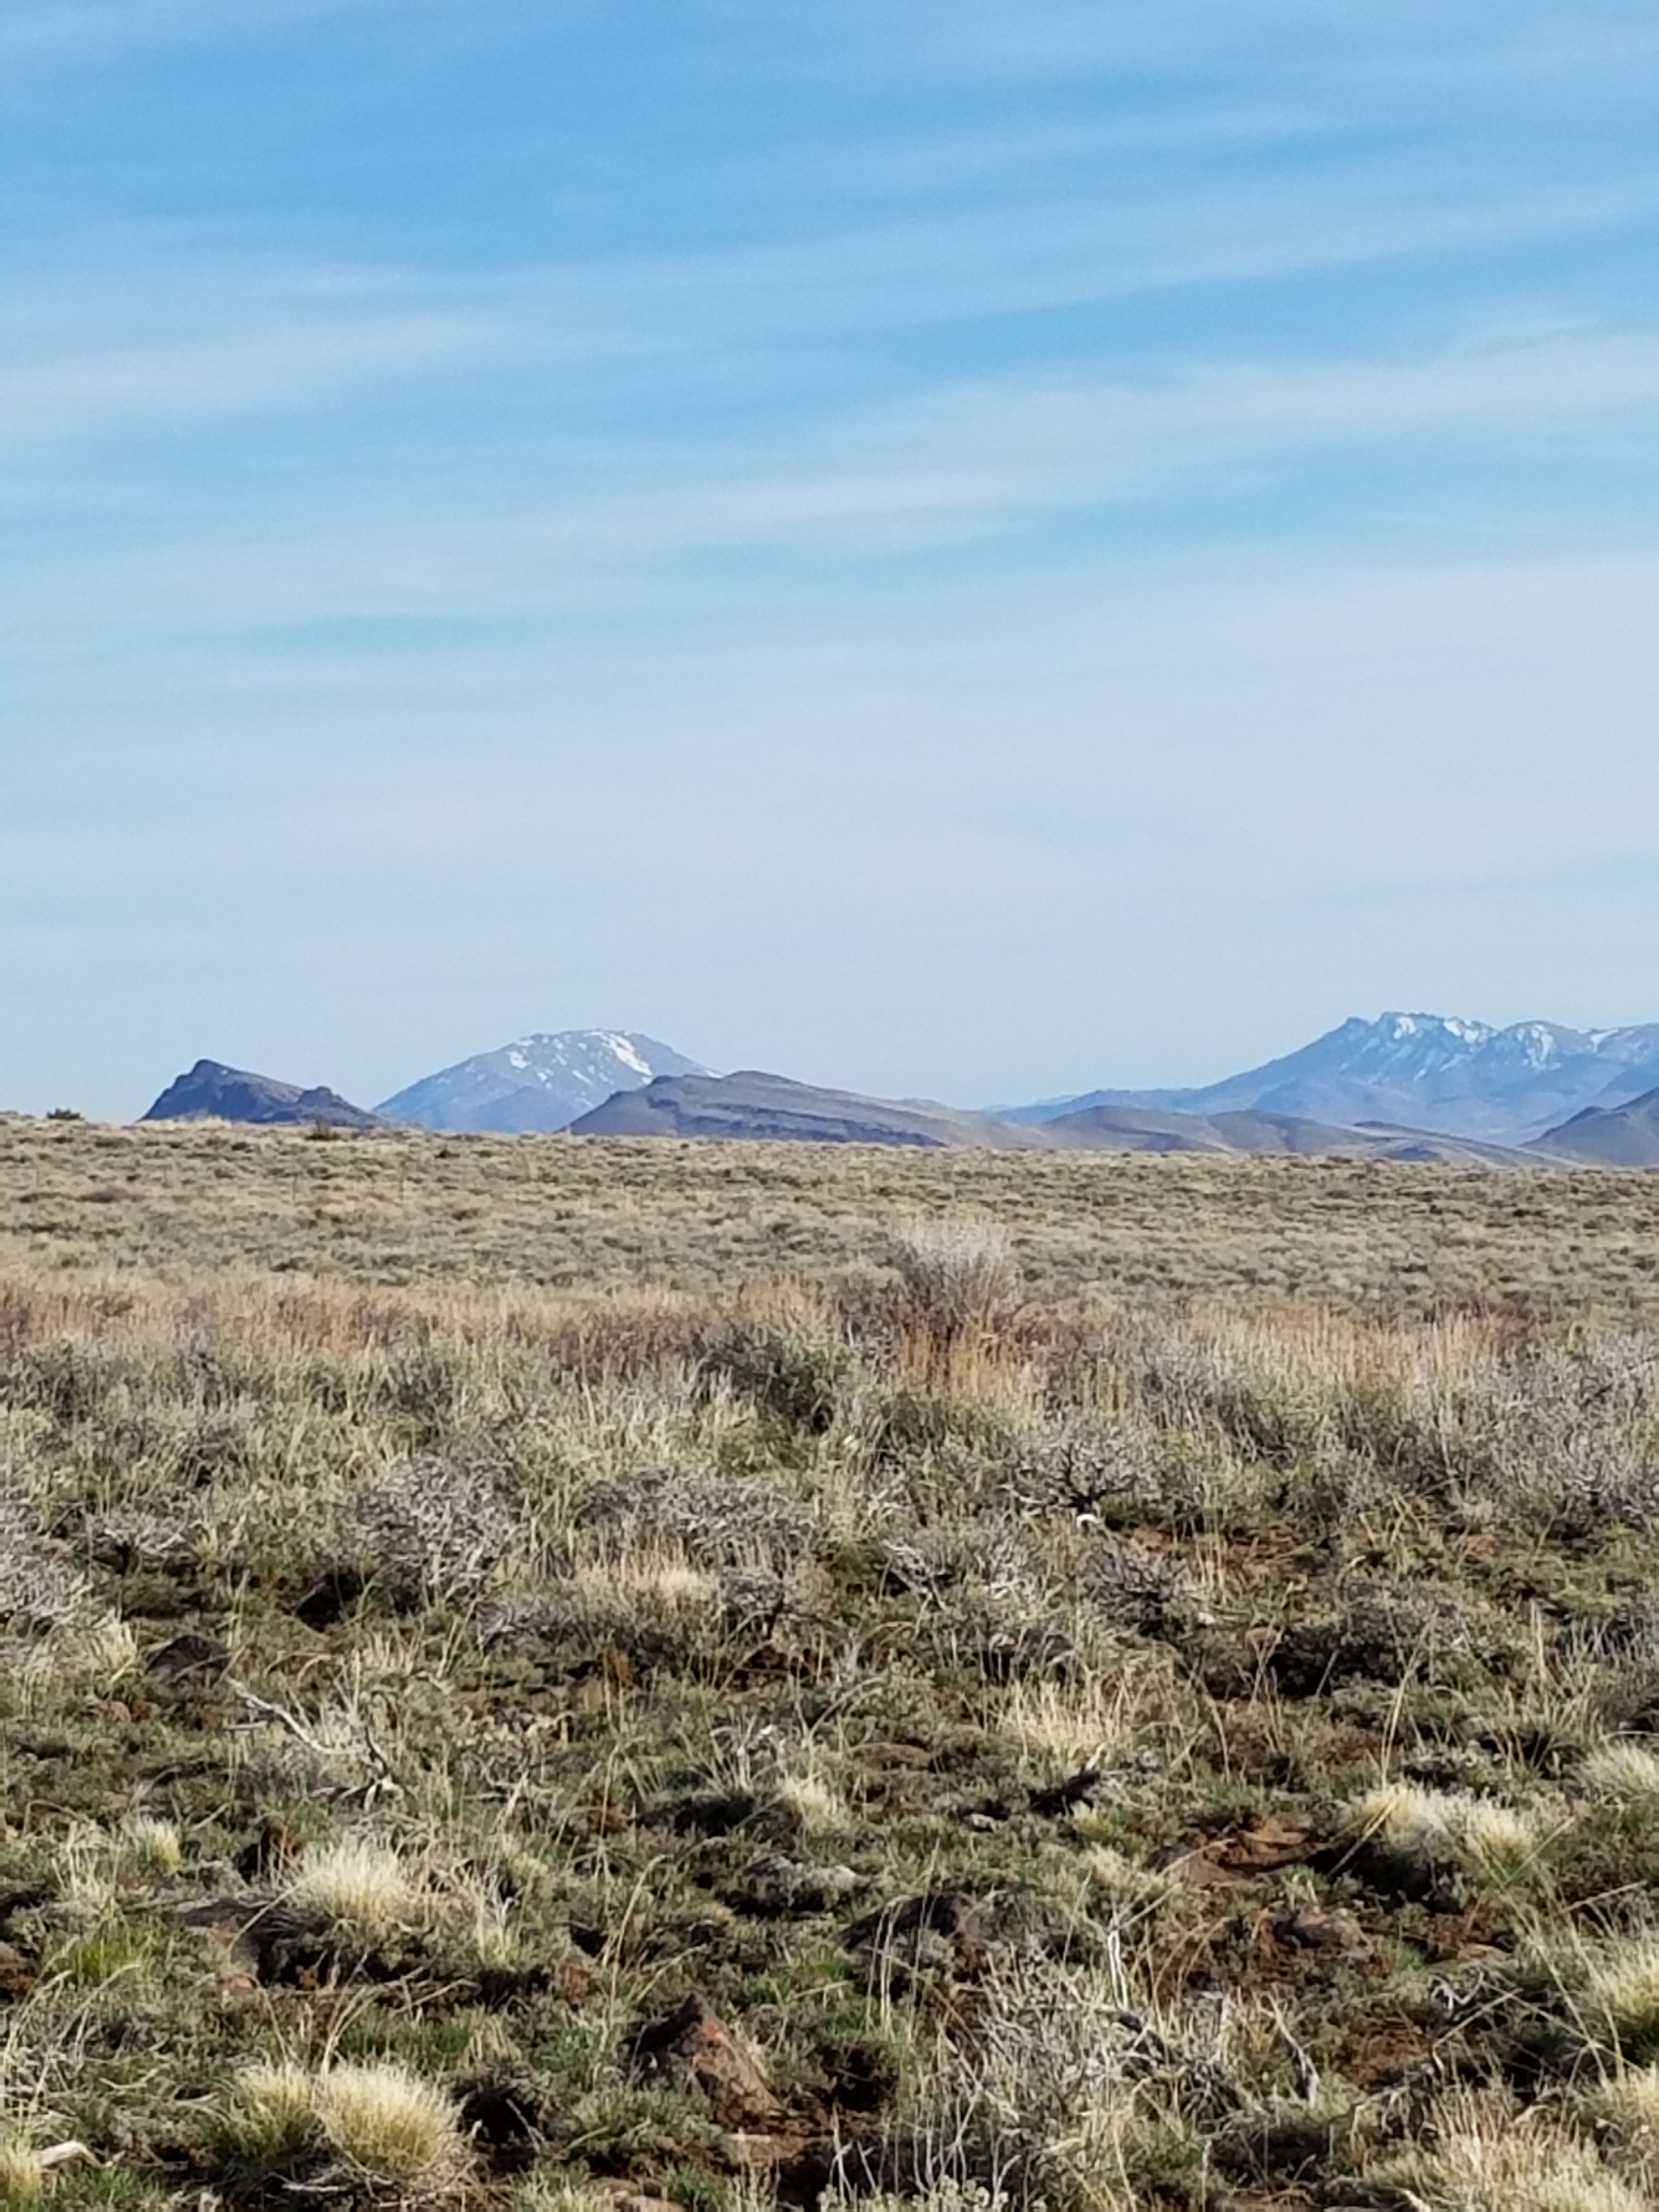 The Pueblo Mountains- High Steens Sage Grouse Habitat